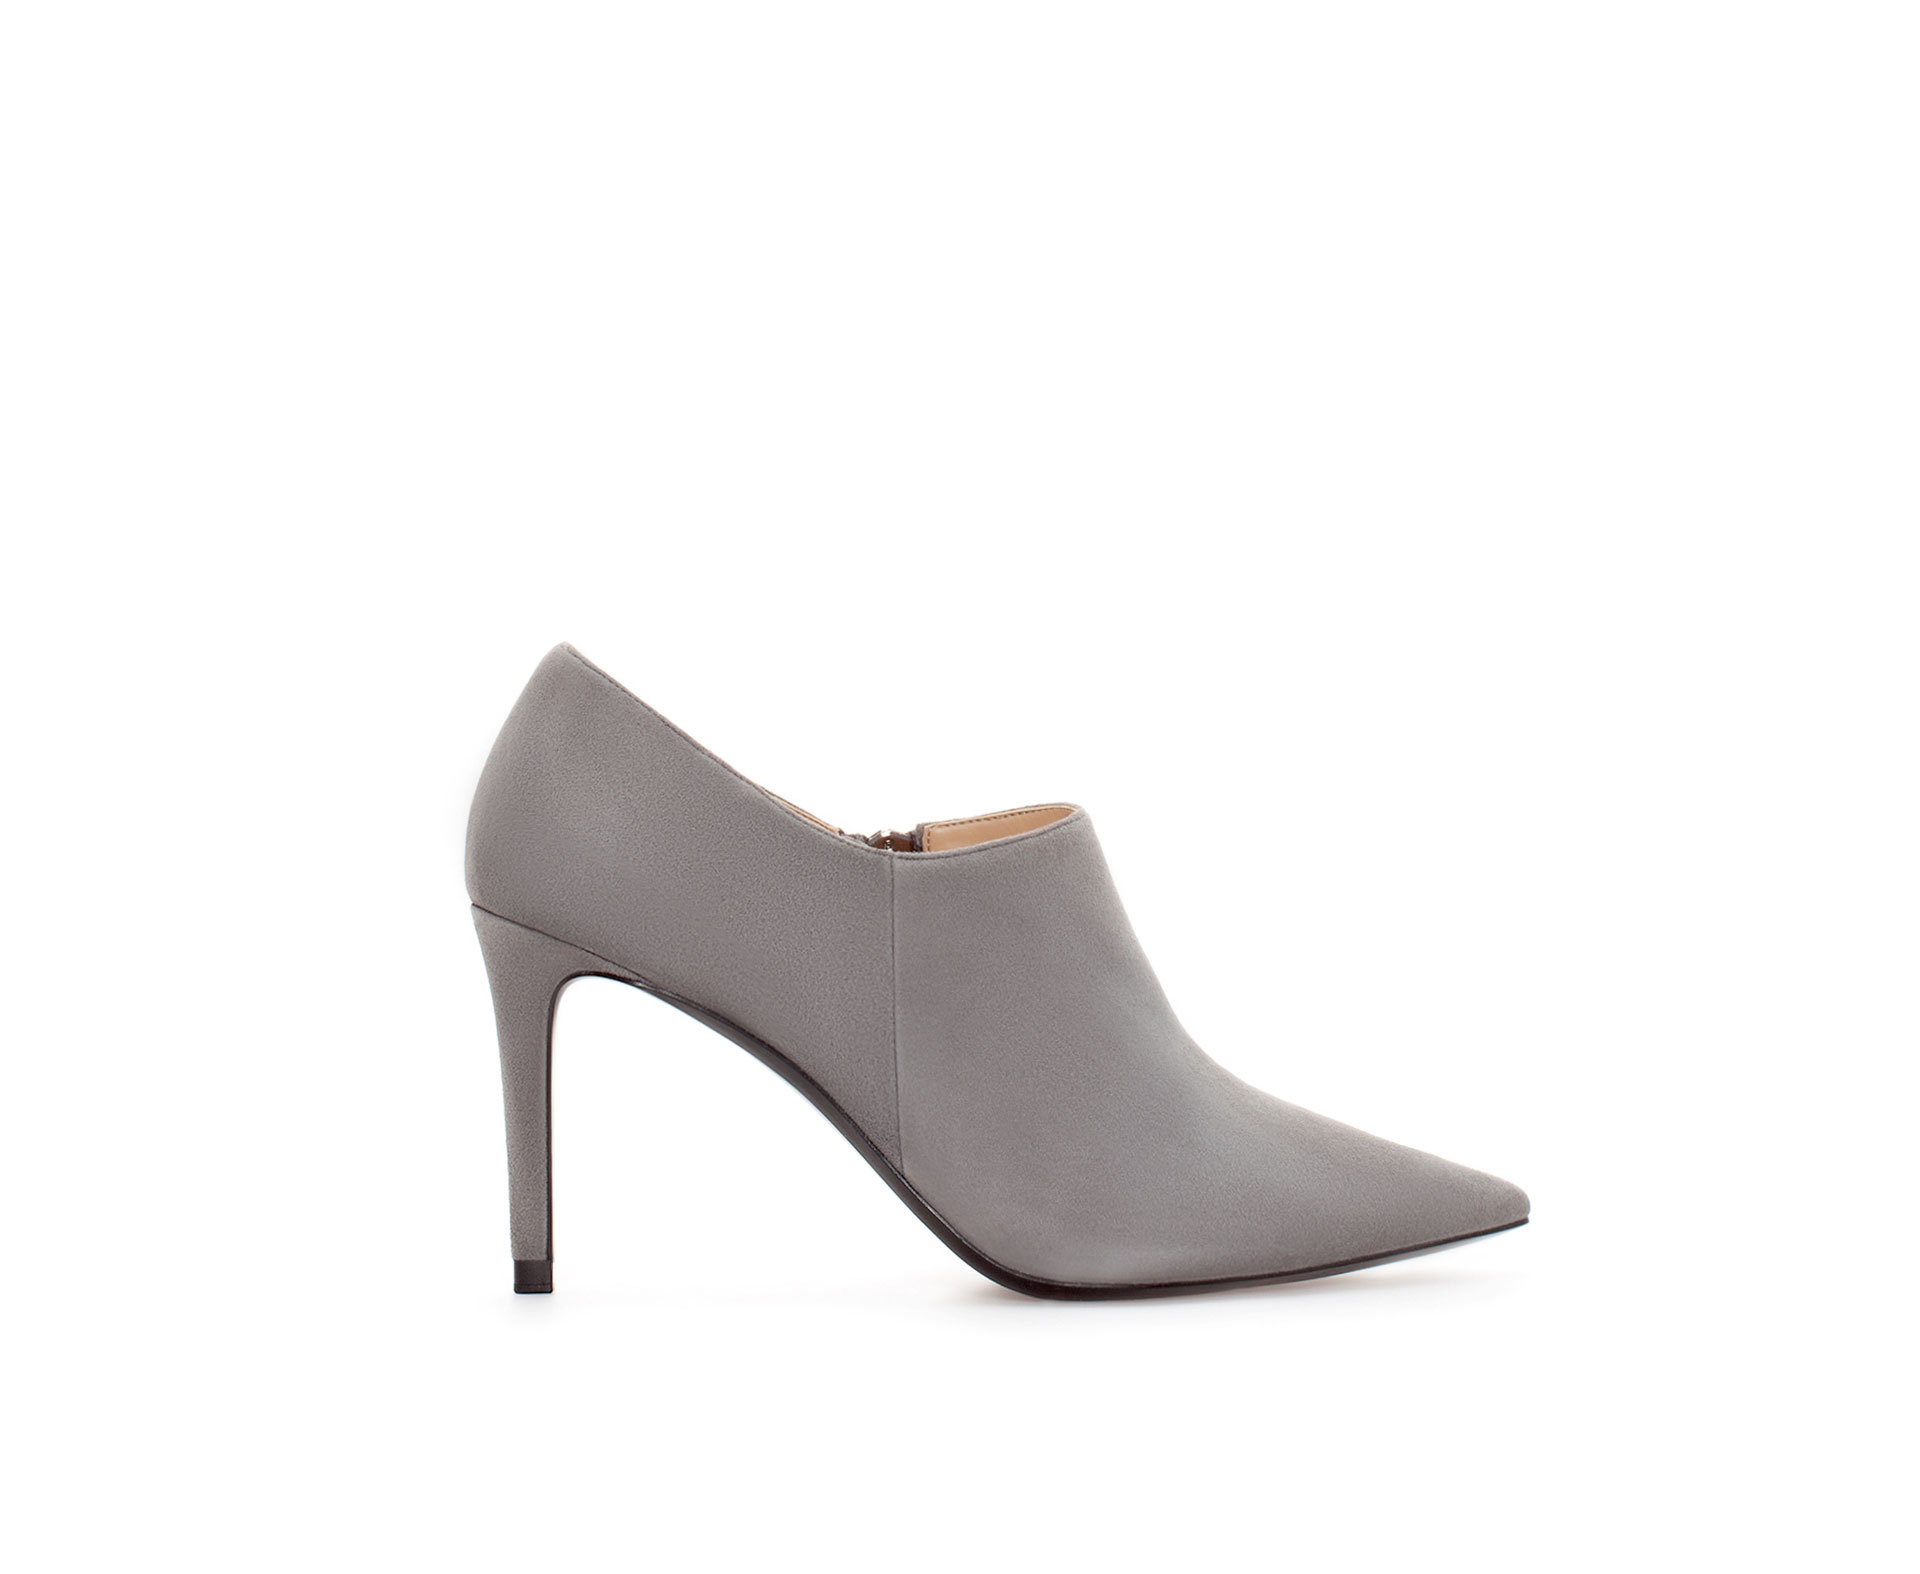 zara suede pointed ankle boot in gray lyst